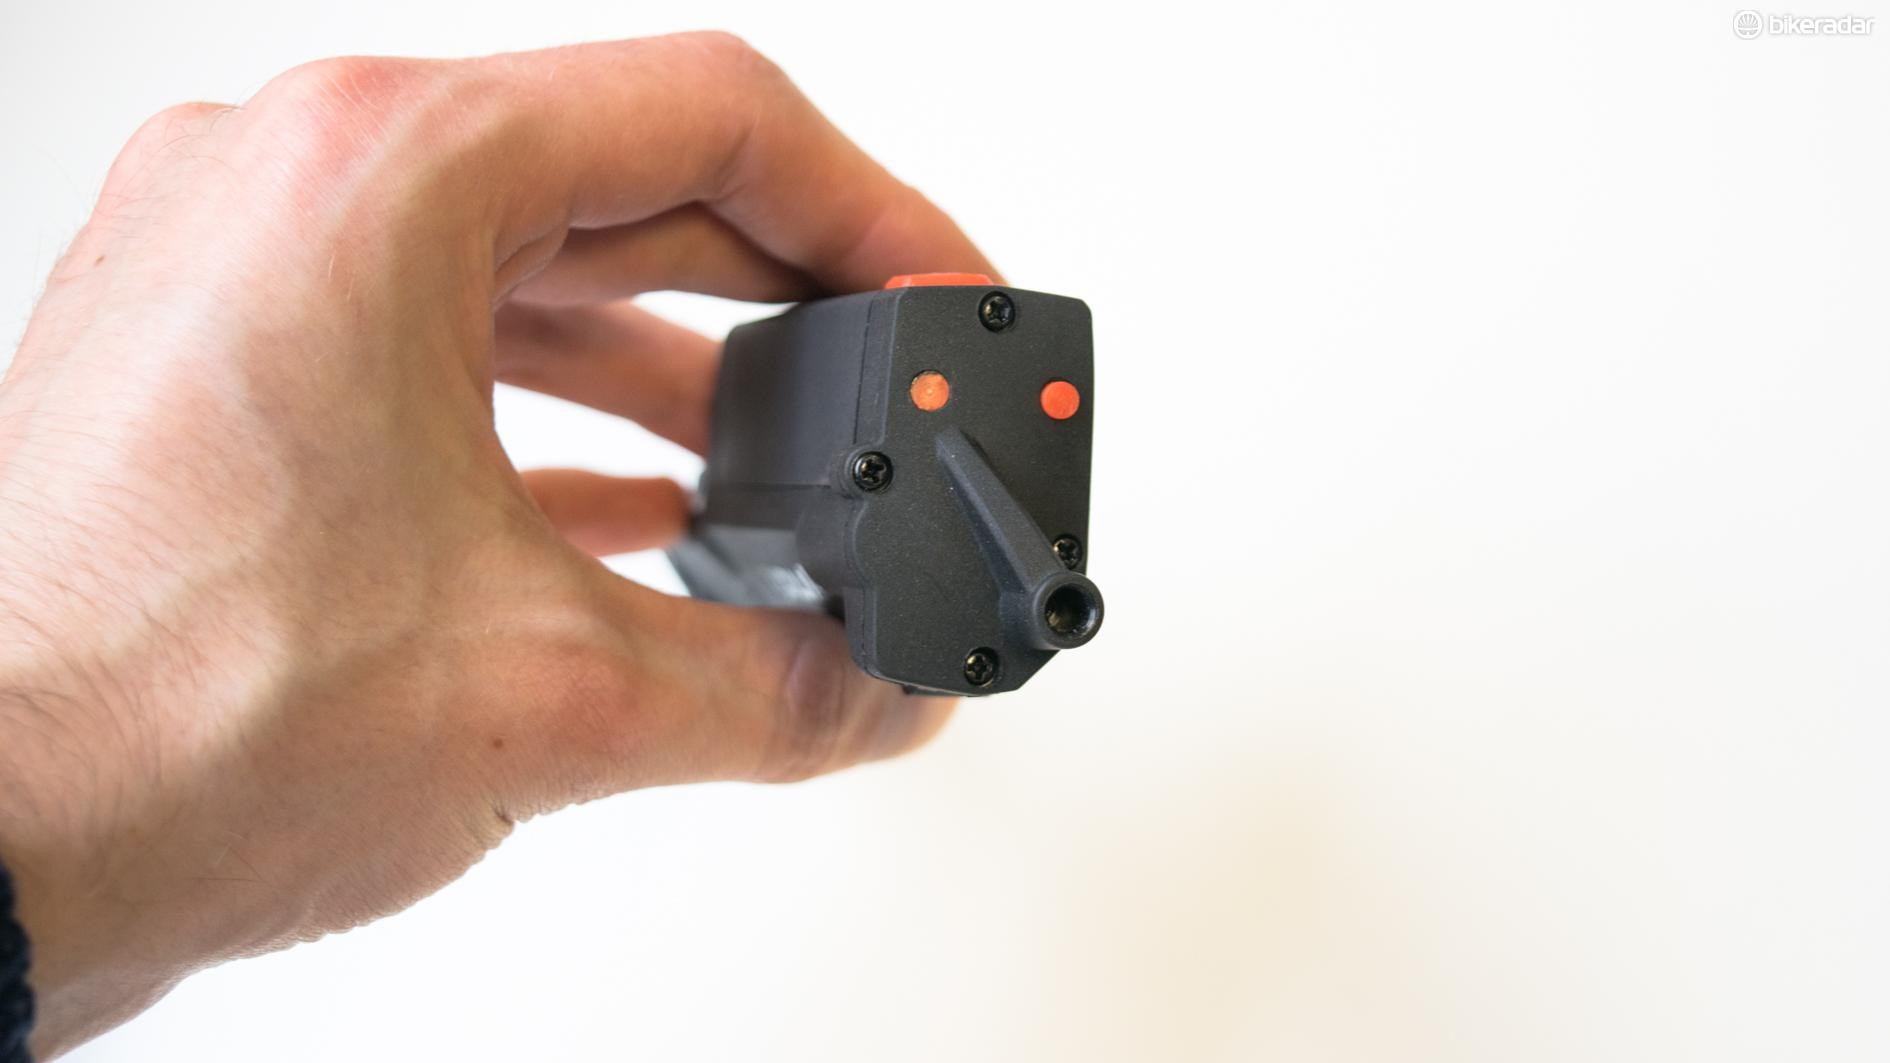 The E-Link mounts near your derailleur, and a cable emerges from that hole